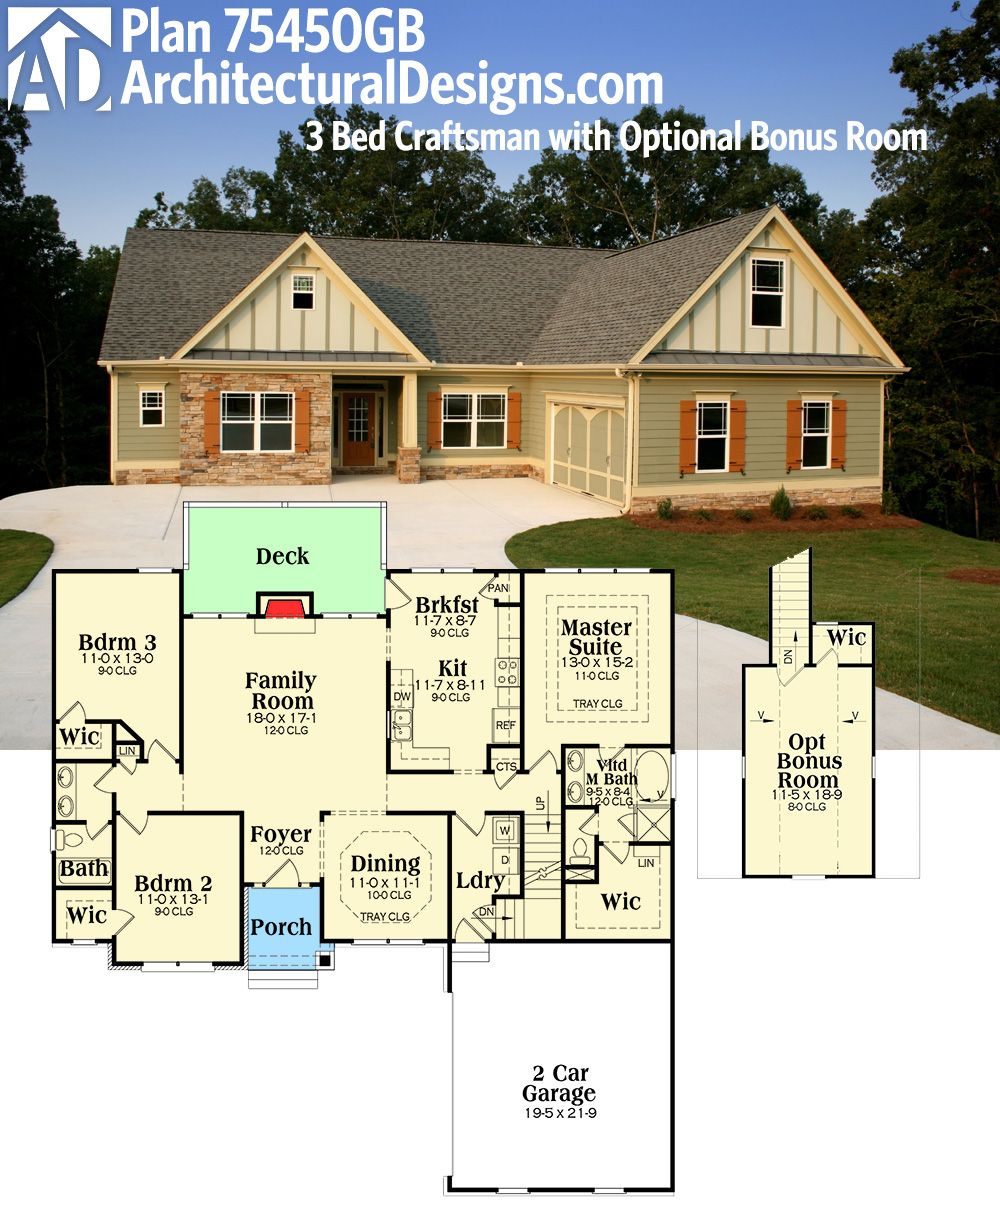 Architectural designs house plan 75450gb gives you one for Garage plans with bonus room